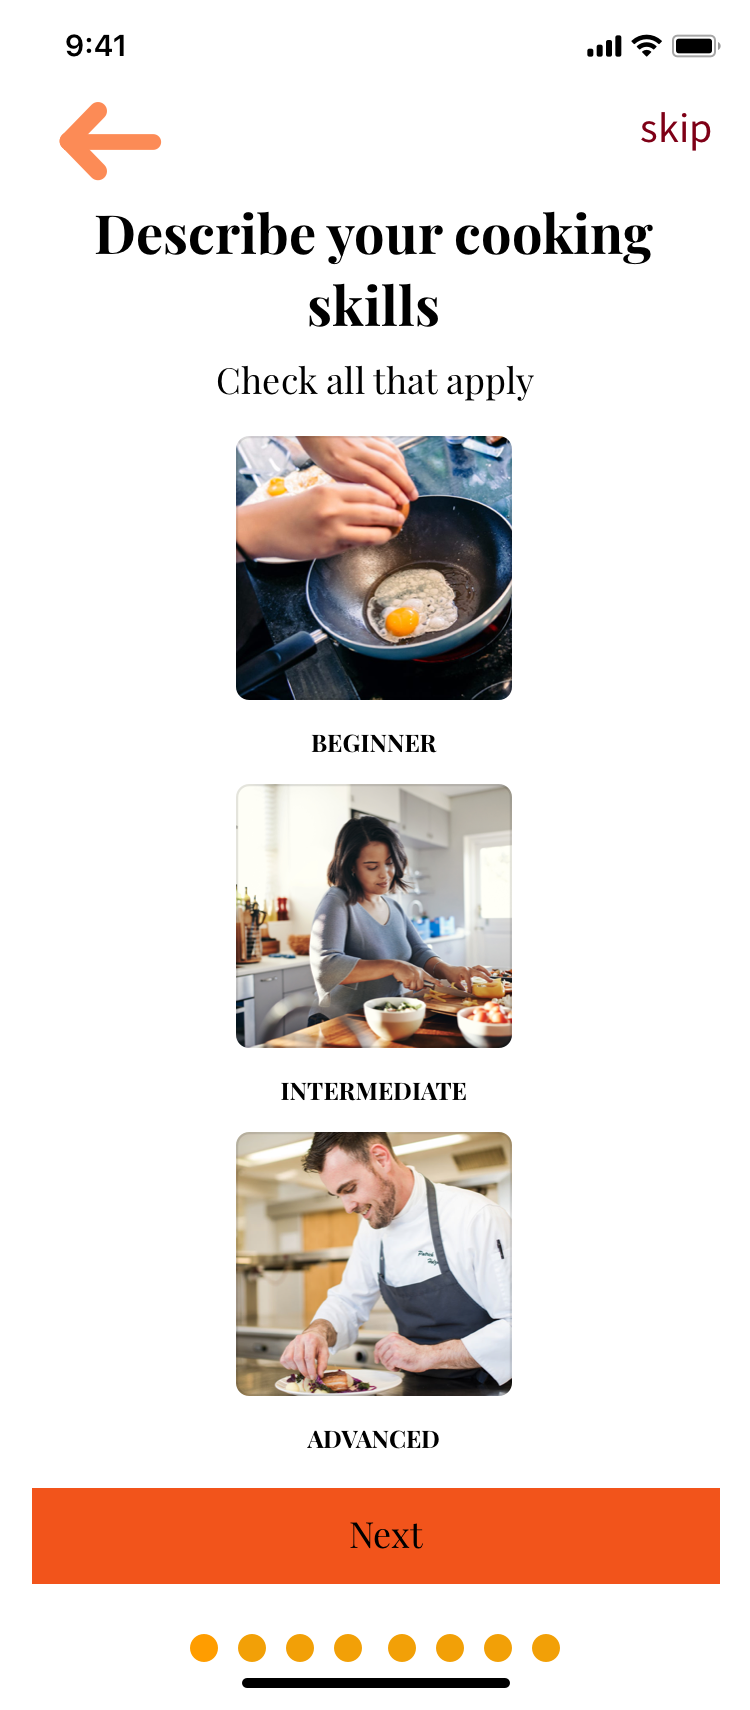 describe-your-cooking-skills